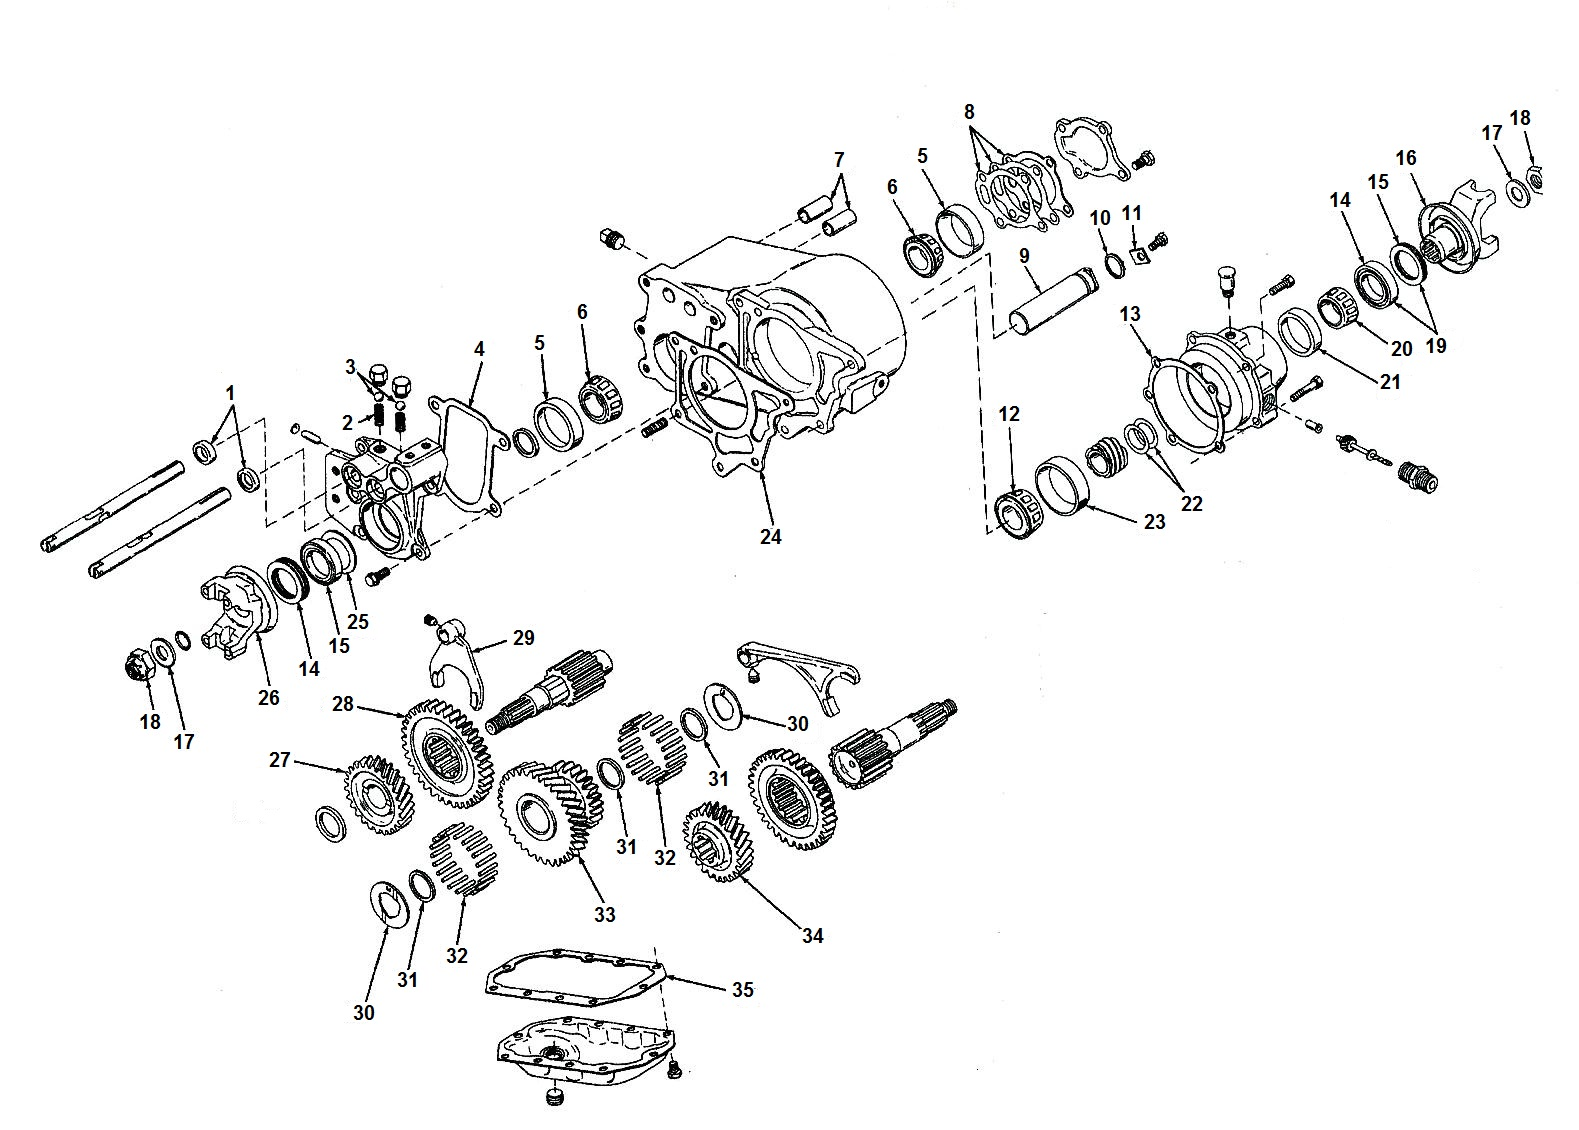 Schematics h additionally Transfer Case Dana 20d besides 181805136516 furthermore P 0996b43f8037fc9e furthermore 1948 Lincoln Continental Wiring Diagram. on 1964 chevy truck parts